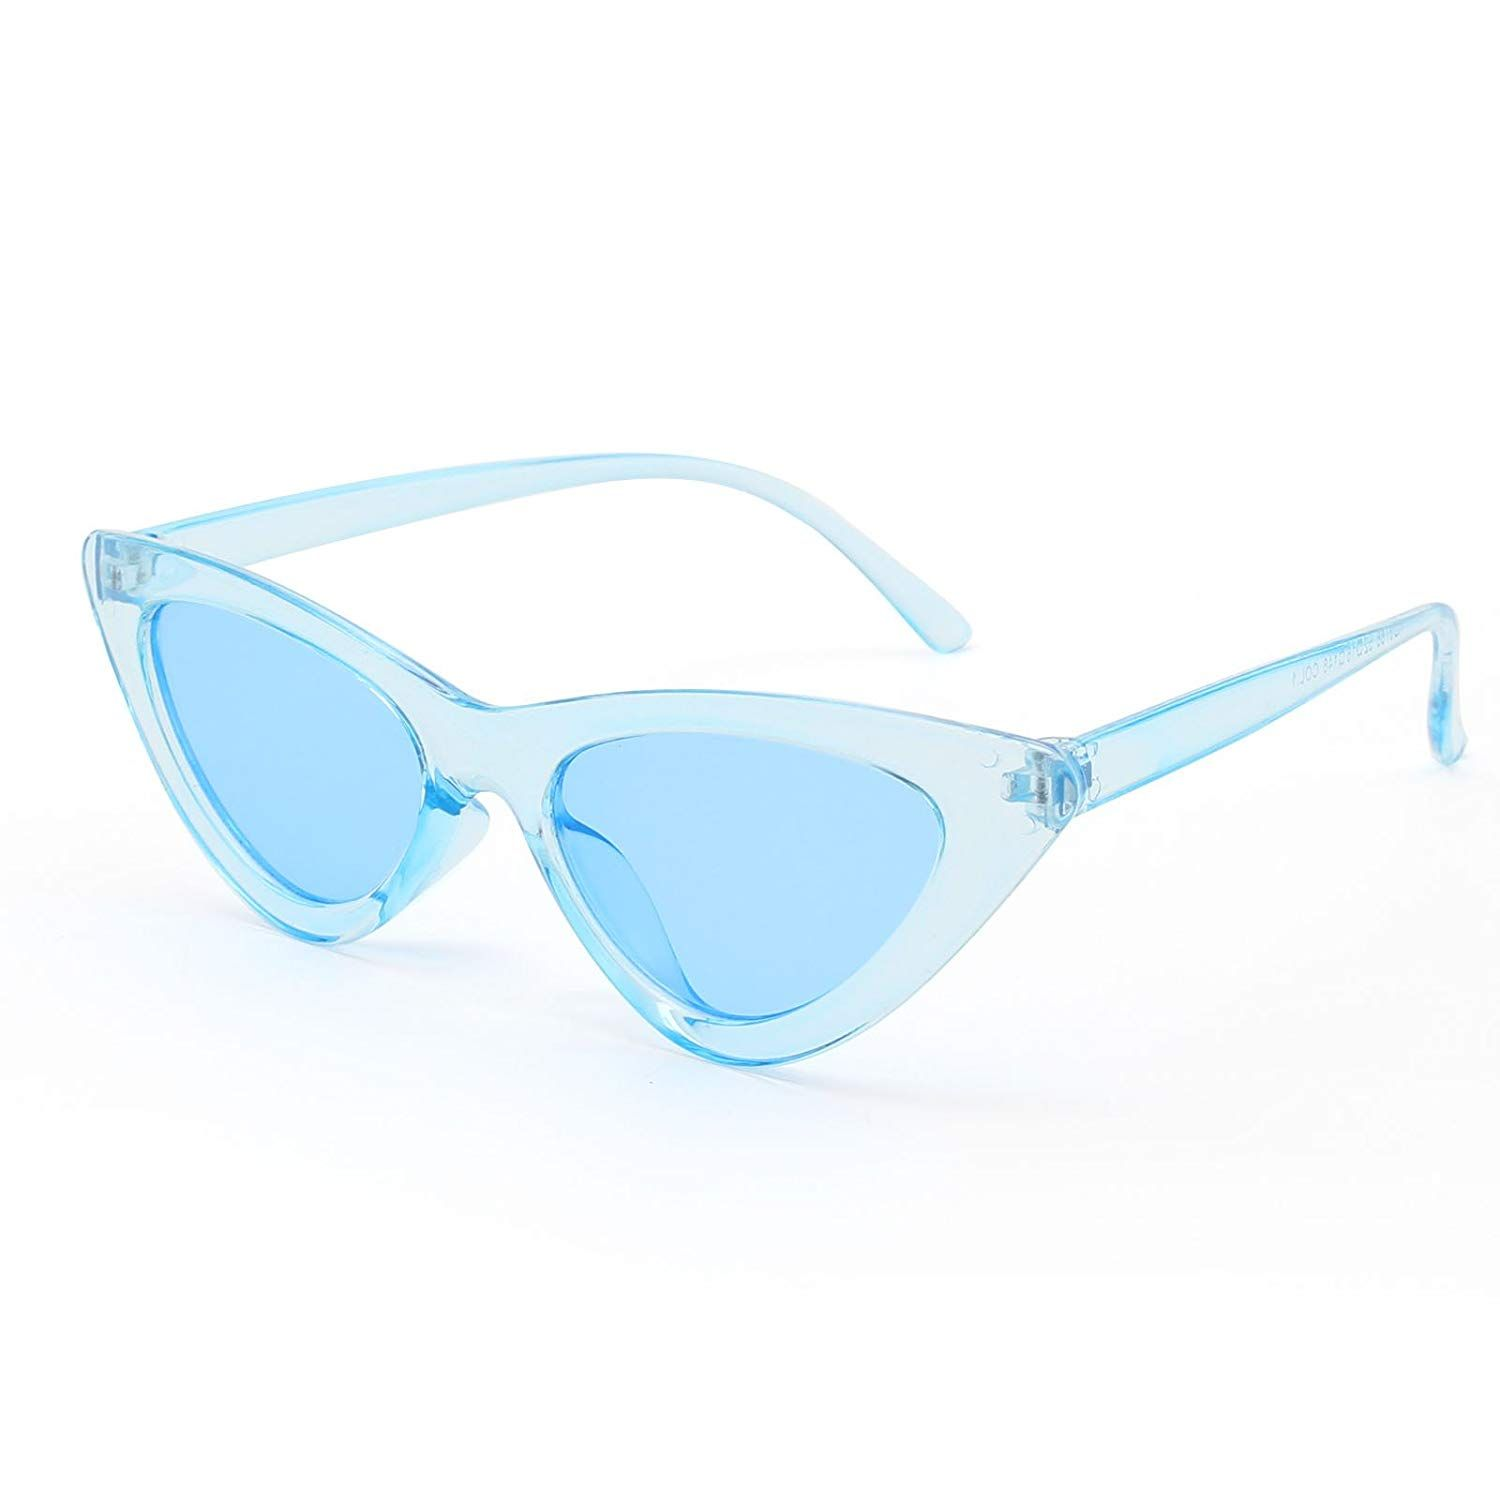 59ccecbad09eb Amazon.com  Livhò Retro Vintage Narrow Cat Eye Sunglasses for Women Clout  Goggles Plastic Frame (Blue Blue Silver For kids)  Clothing